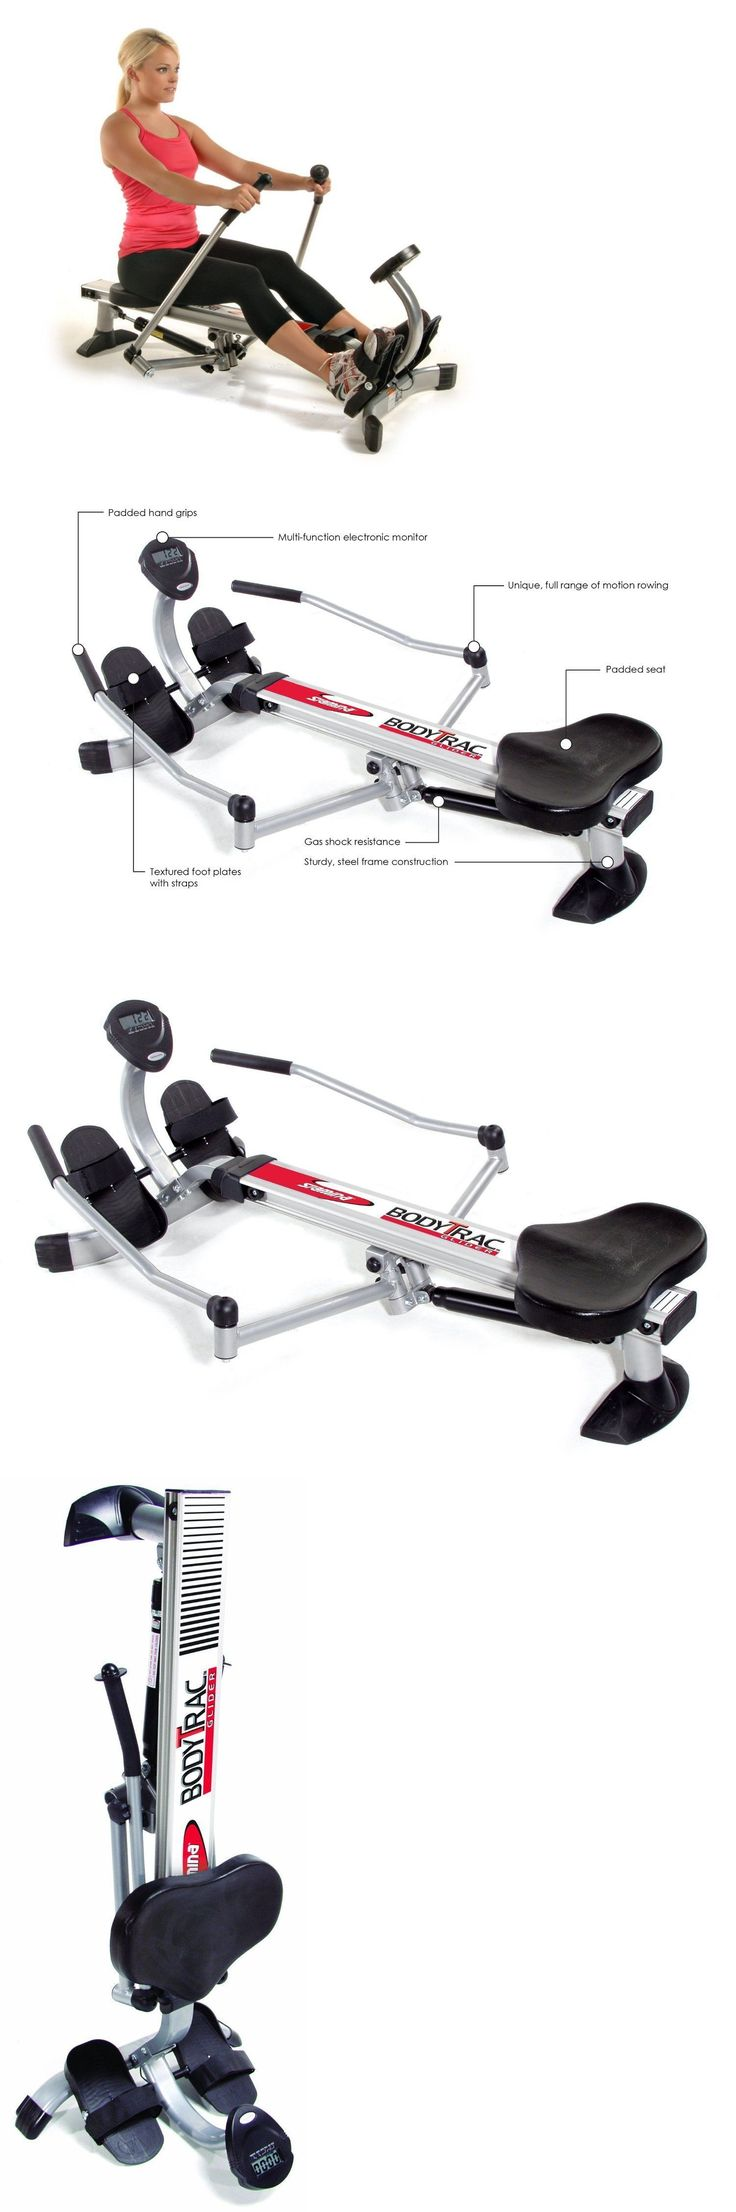 Rowing Machines 28060: Stamina Rowing Machine Cardio Exercise Folding Fitness Rower With Monitor New -> BUY IT NOW ONLY: $151.95 on eBay!